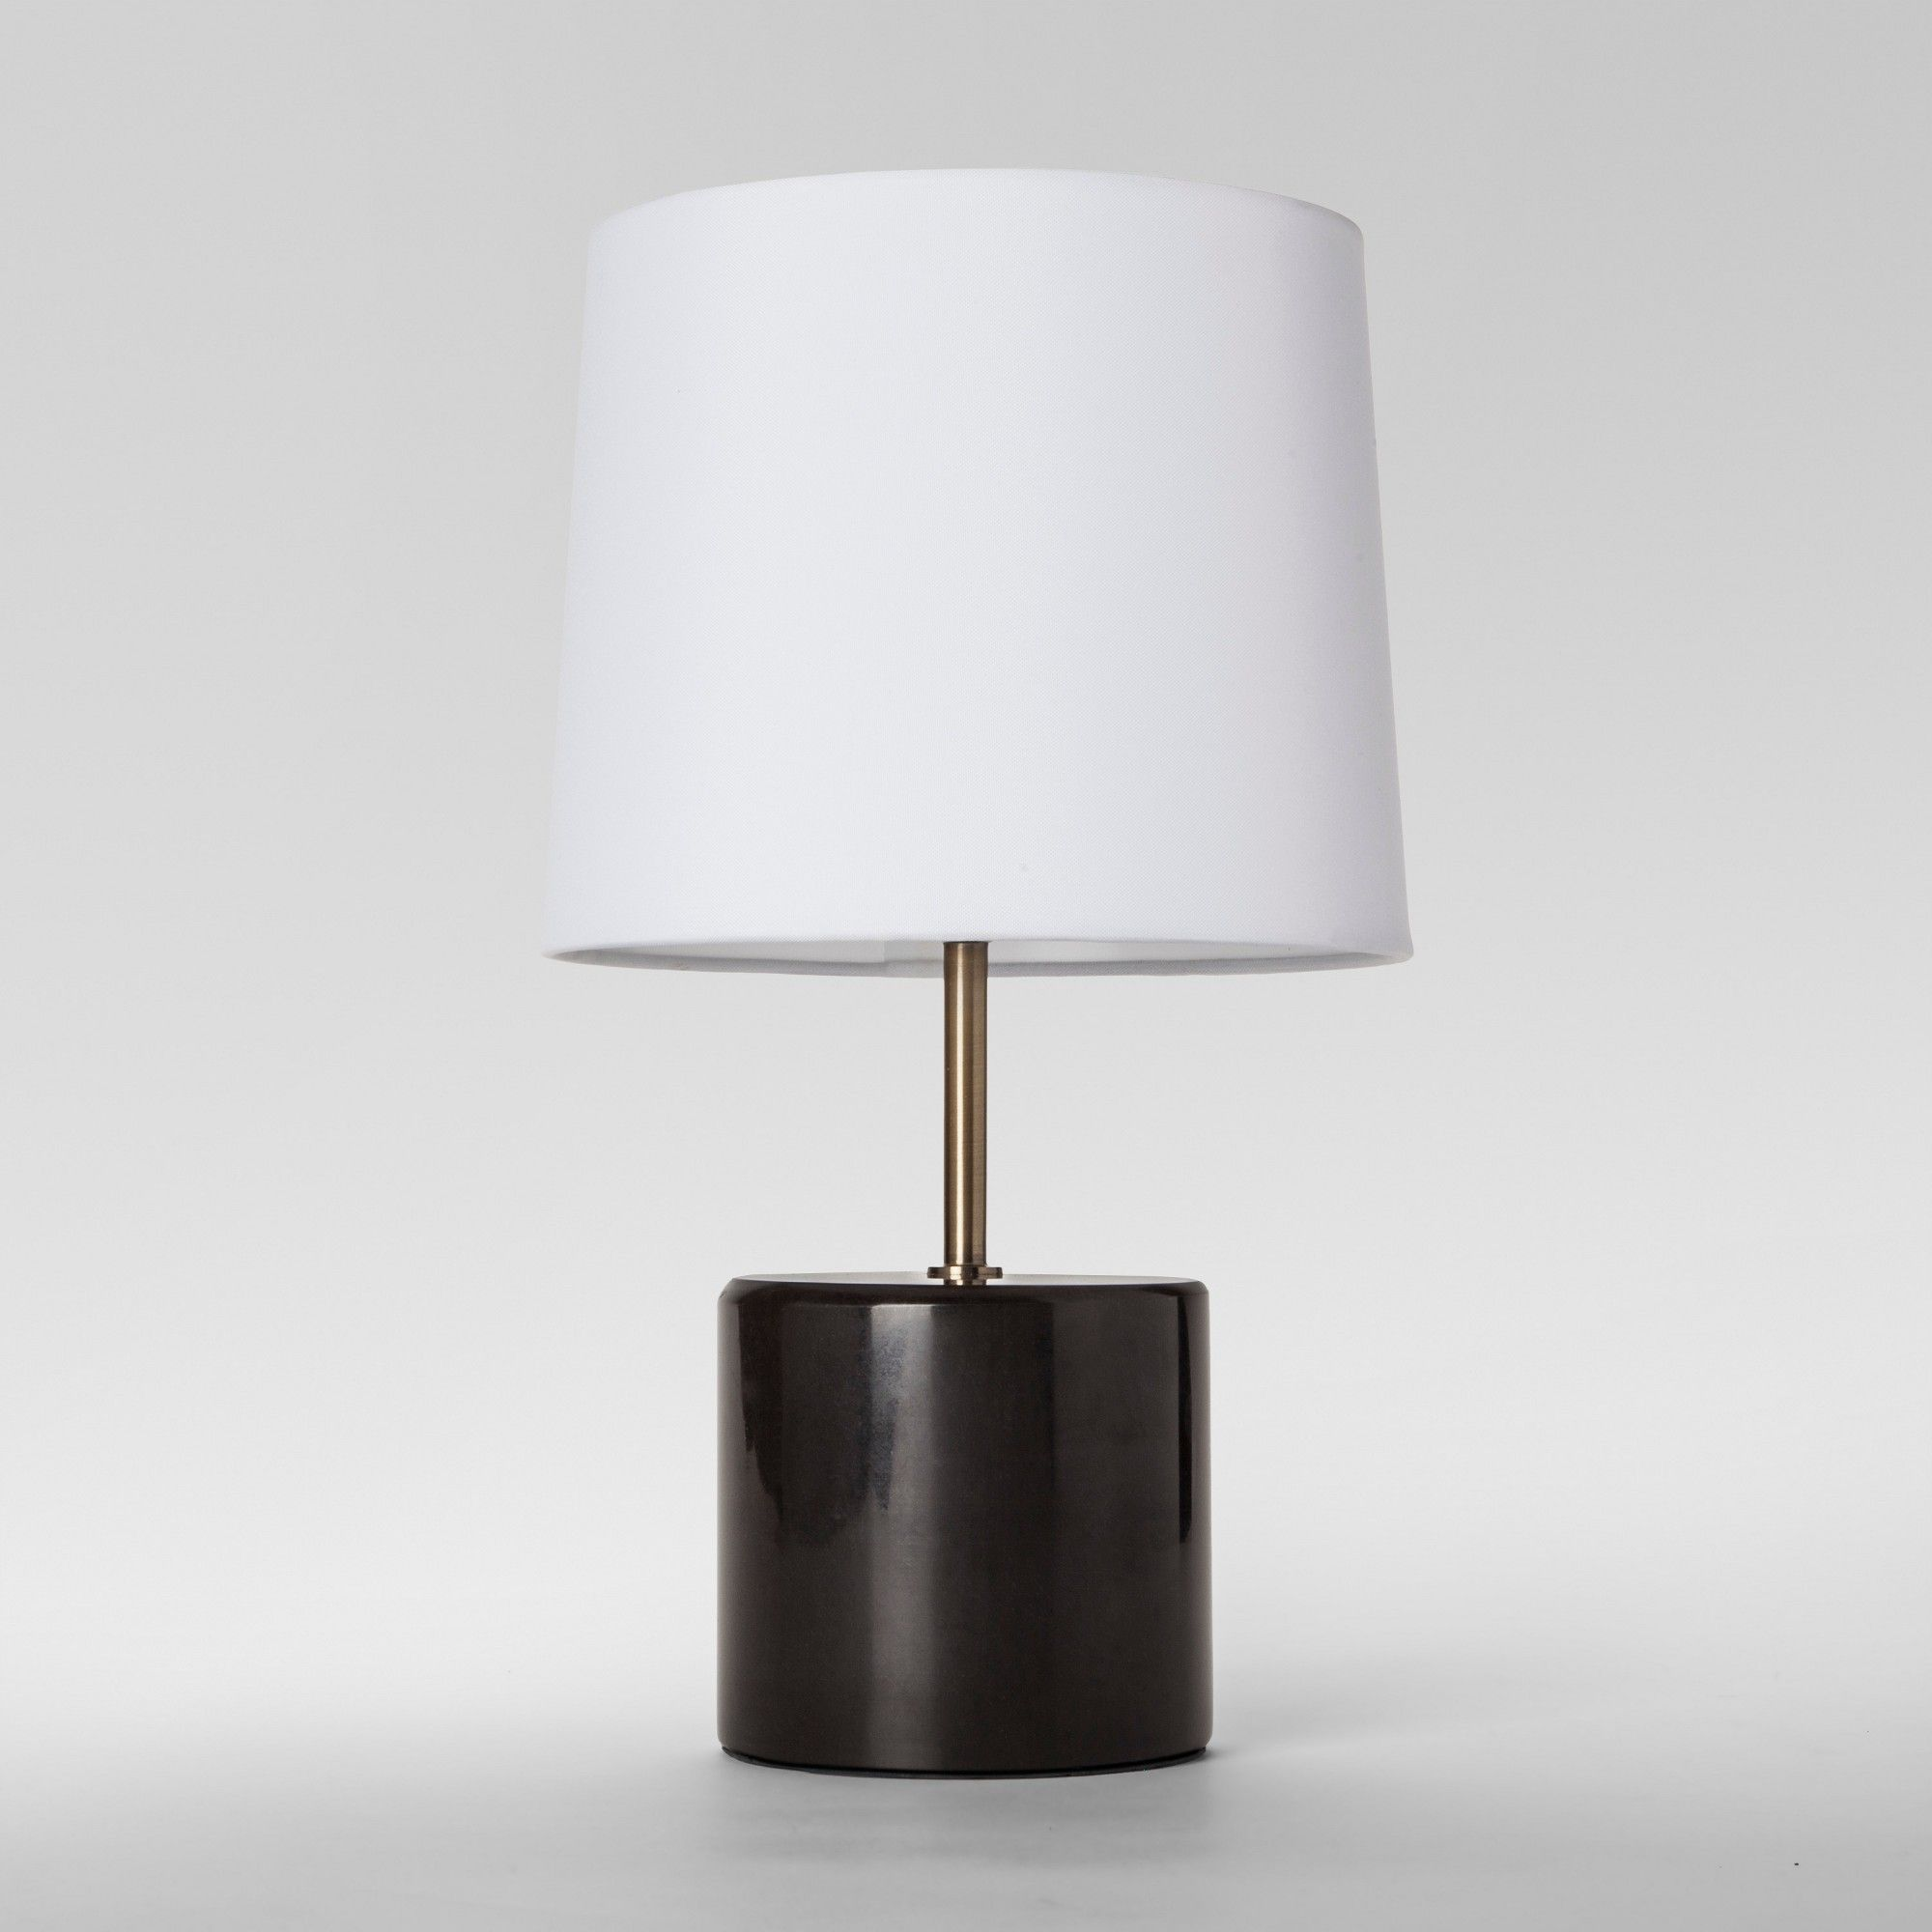 modern marble accent table lamp black includes energy efficient gold lamps light bulb project the room furniture white drop leaf and chairs triangle coffee ikea couch tables